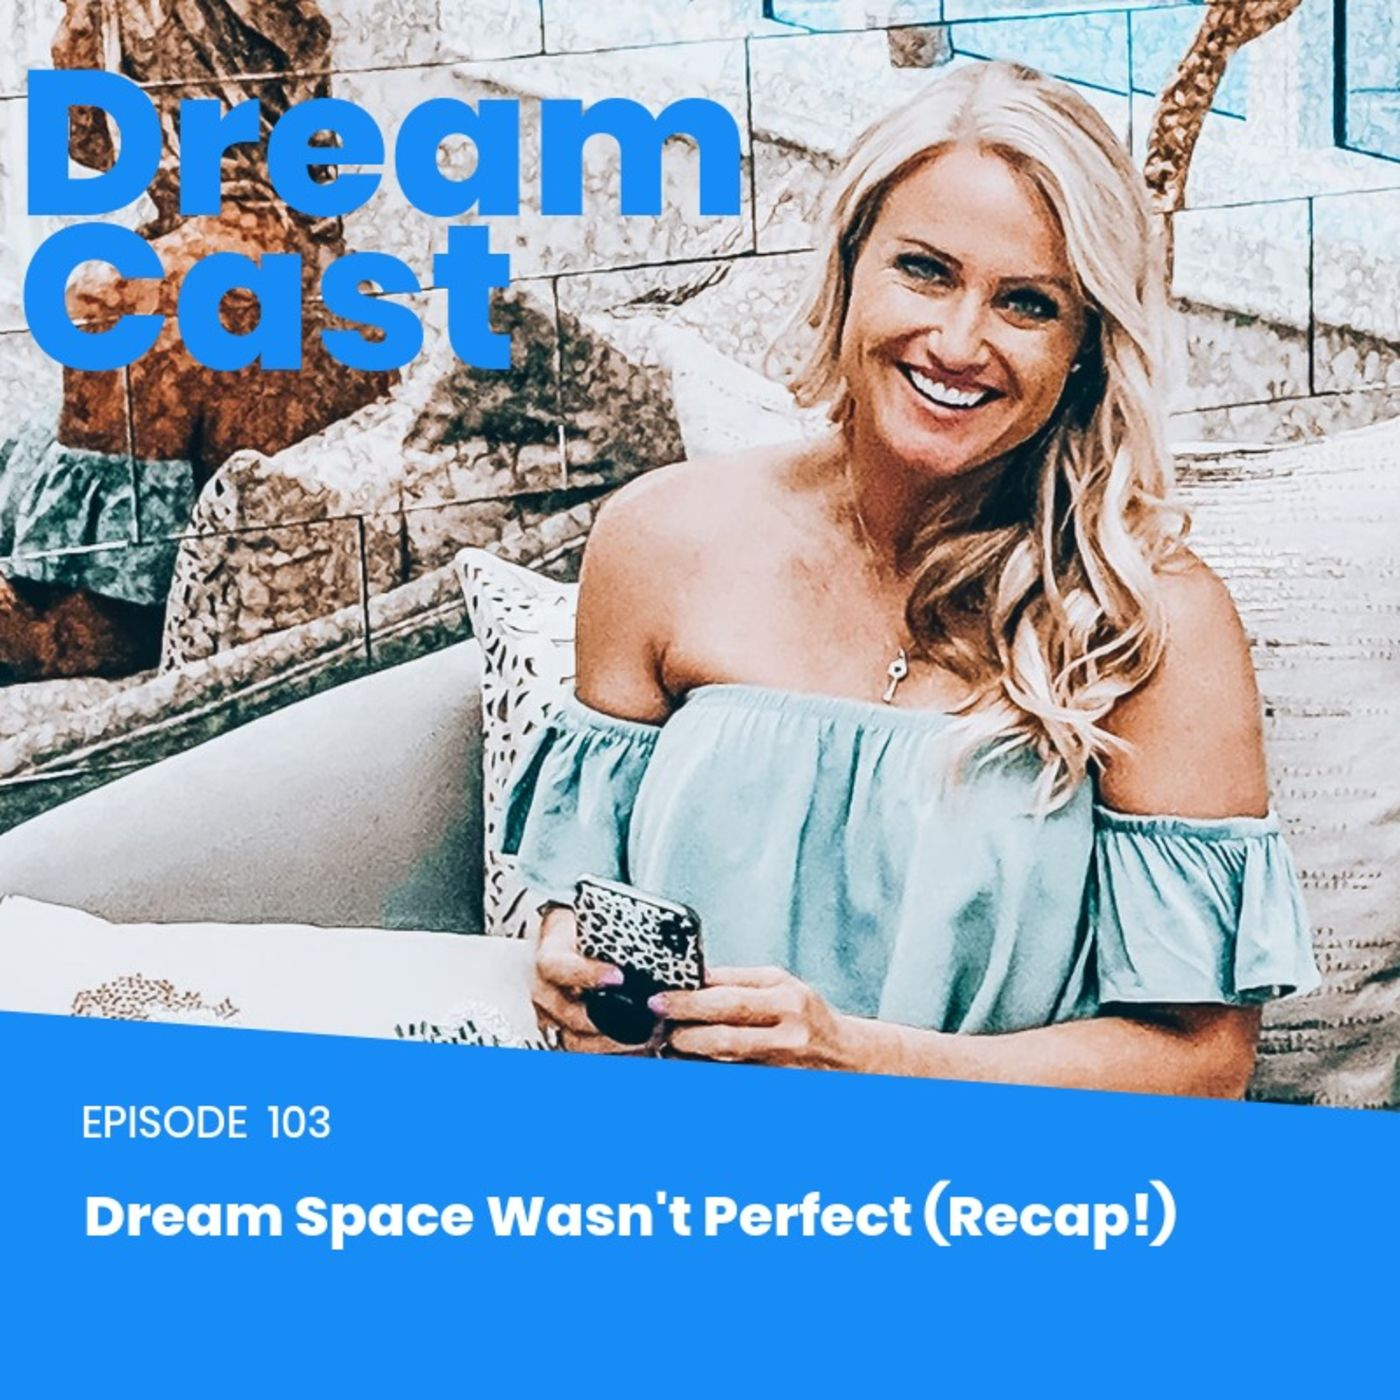 Episode 103 - Dream Space Wasn't Perfect (Recap!)